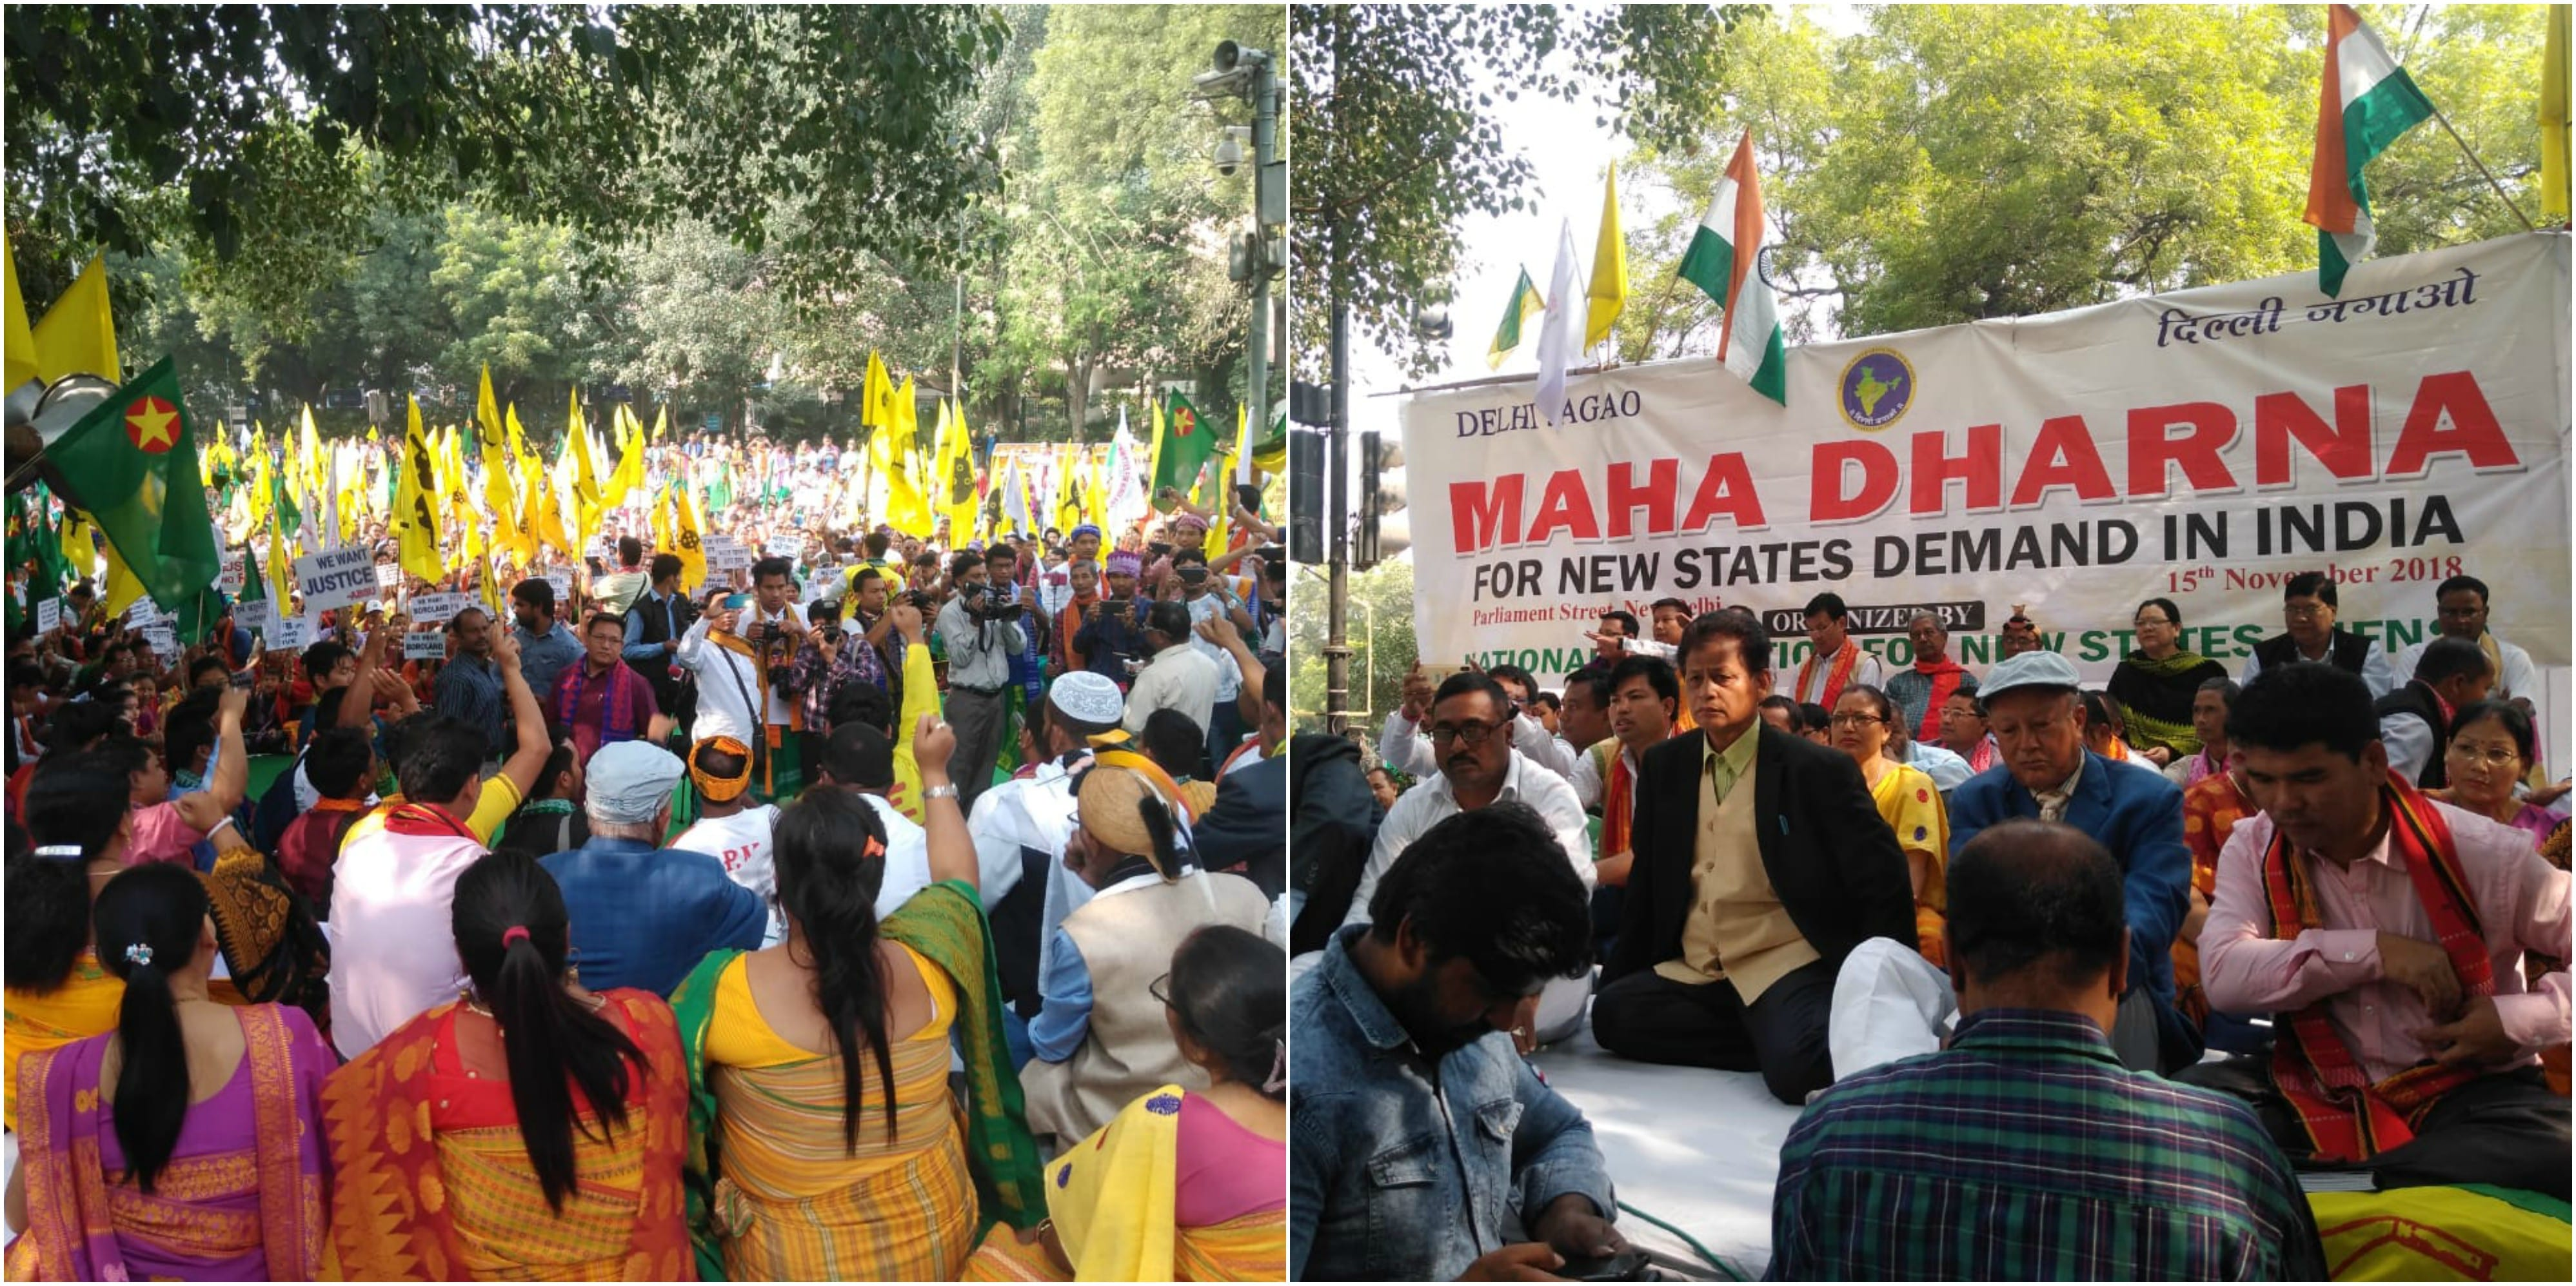 National Federation for New State stages a day long 'Maha Dharna' in National Capital